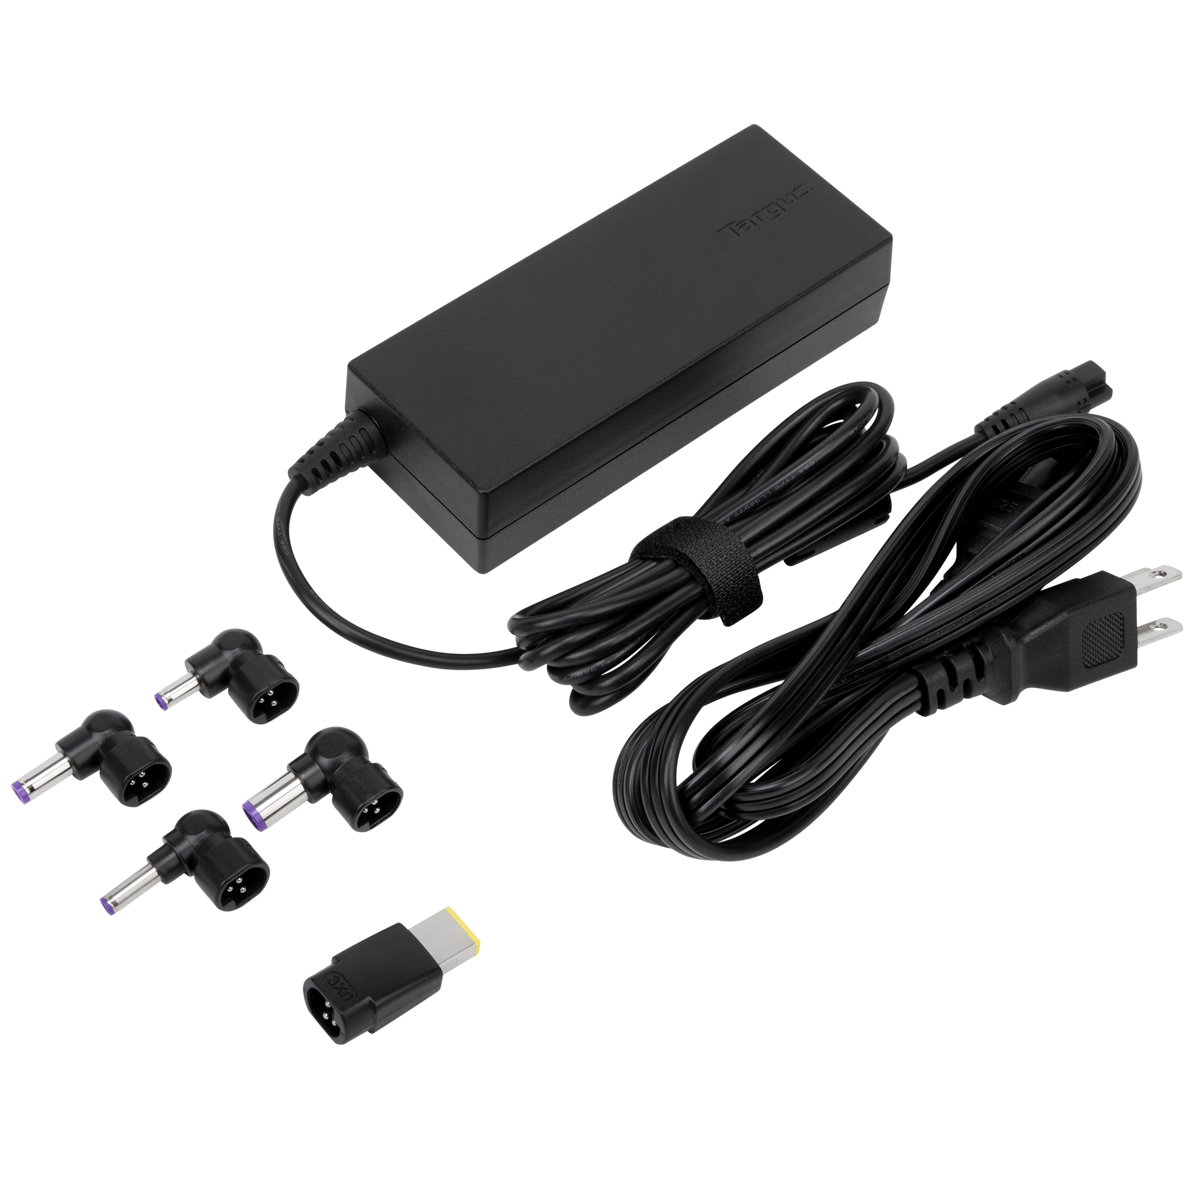 90W Laptop Charger (AC) - APA31US - Black: Chargers: Targus